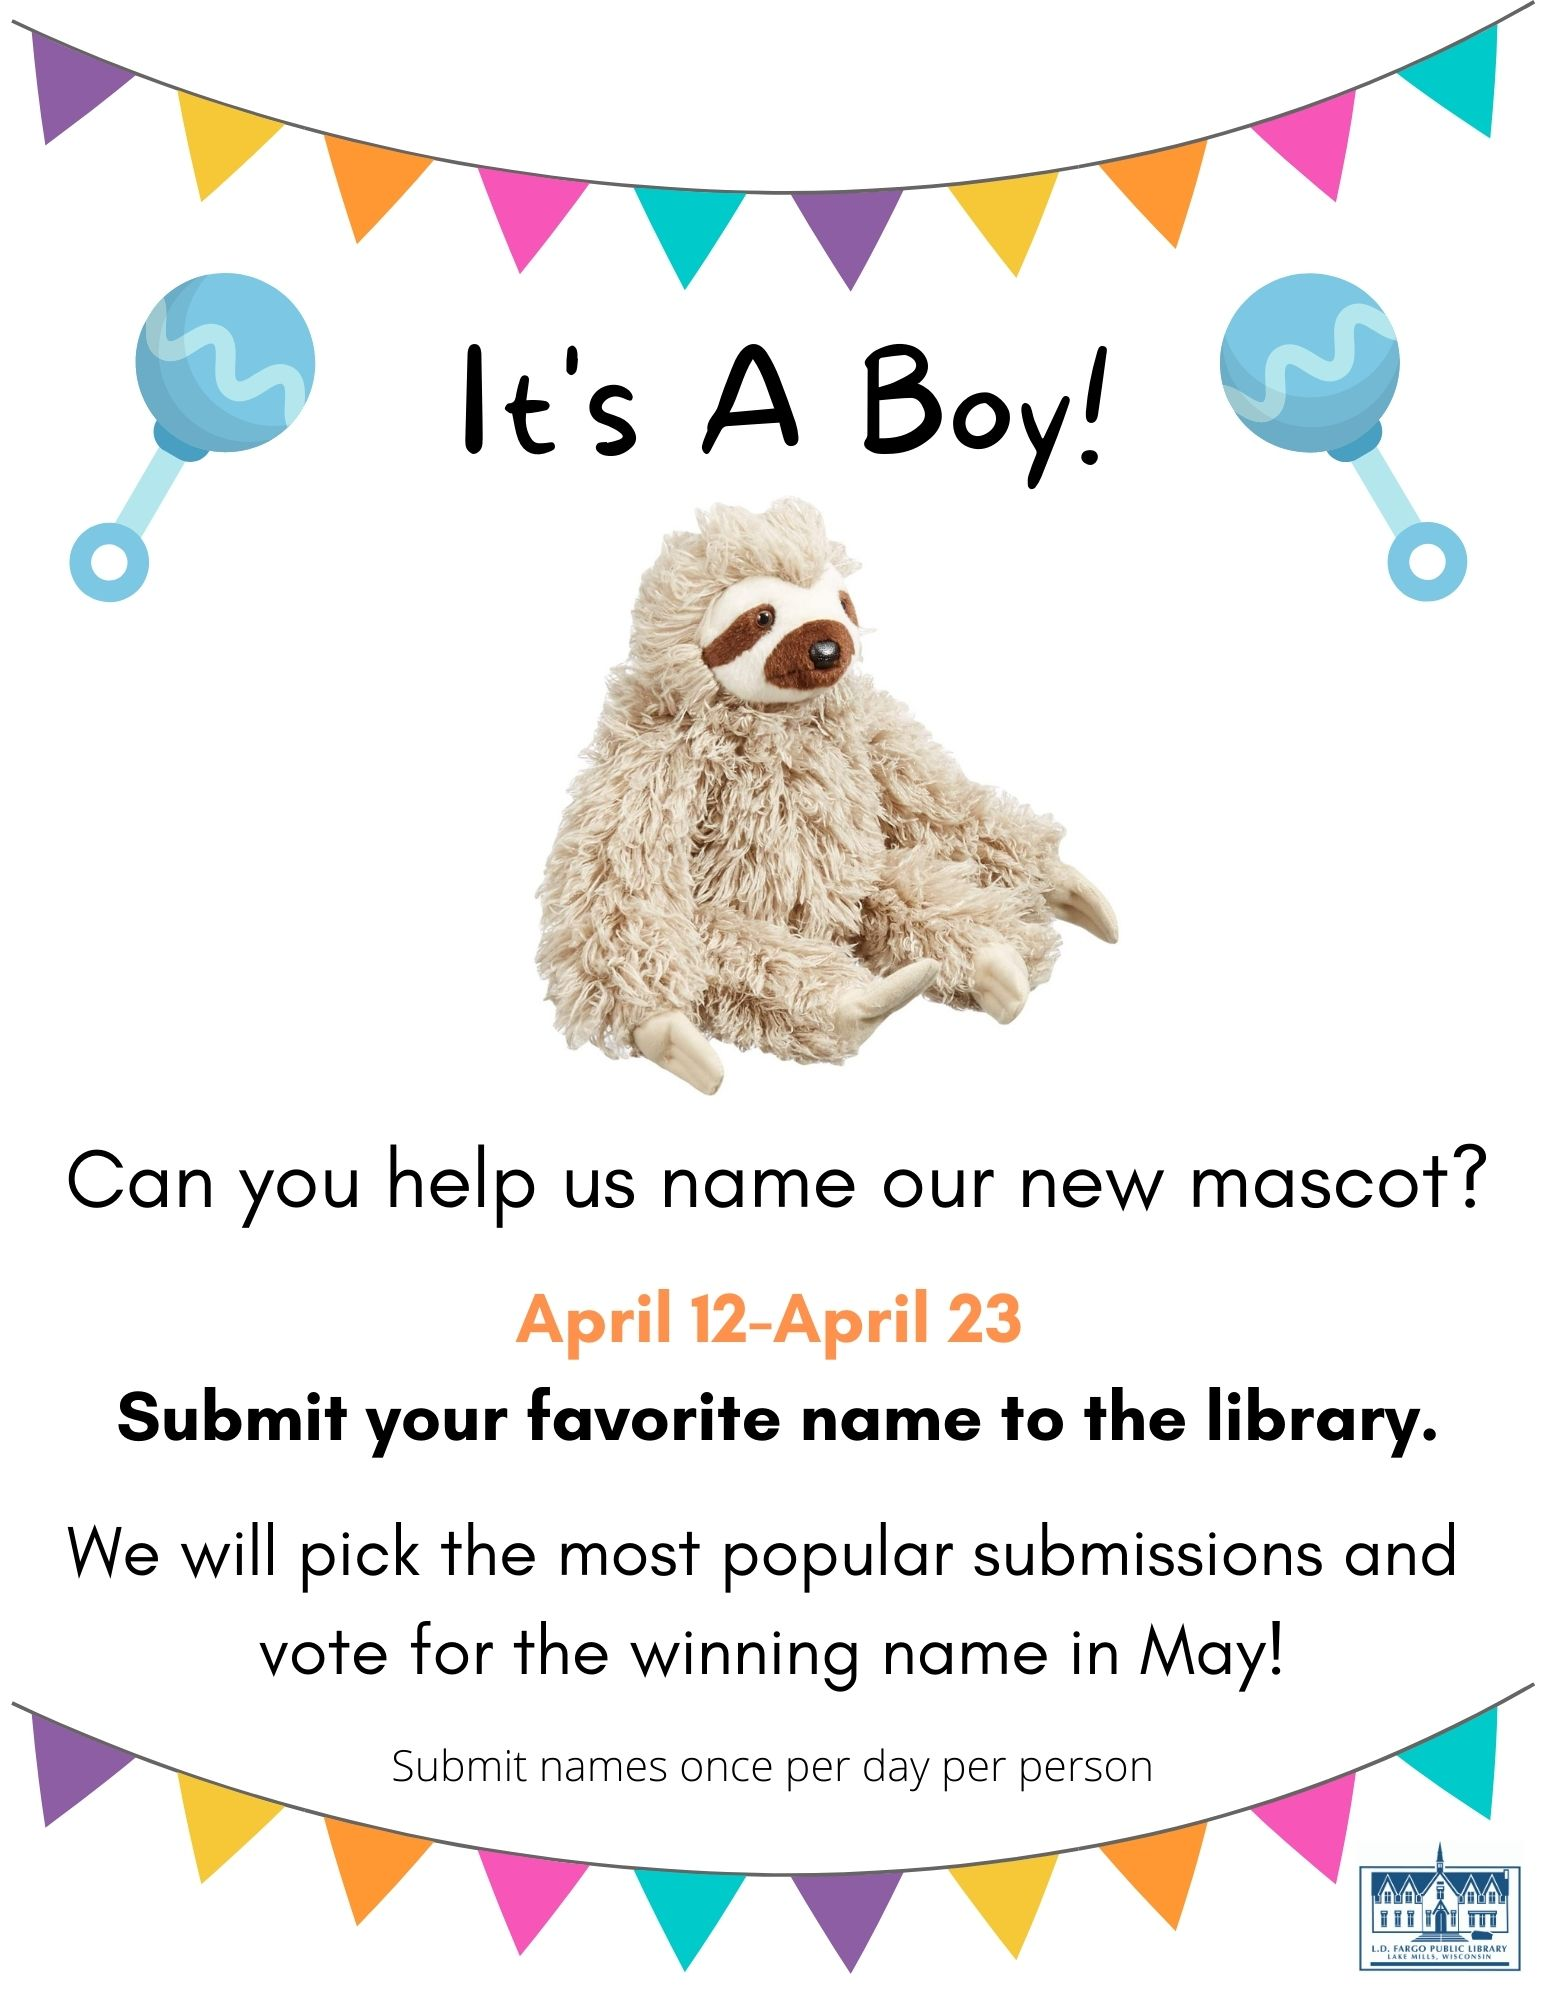 It's a Boy!   April 12-April 23 Submit your favorite name to the library.  We will pick the most popular submissions and vote for the winning name in May!